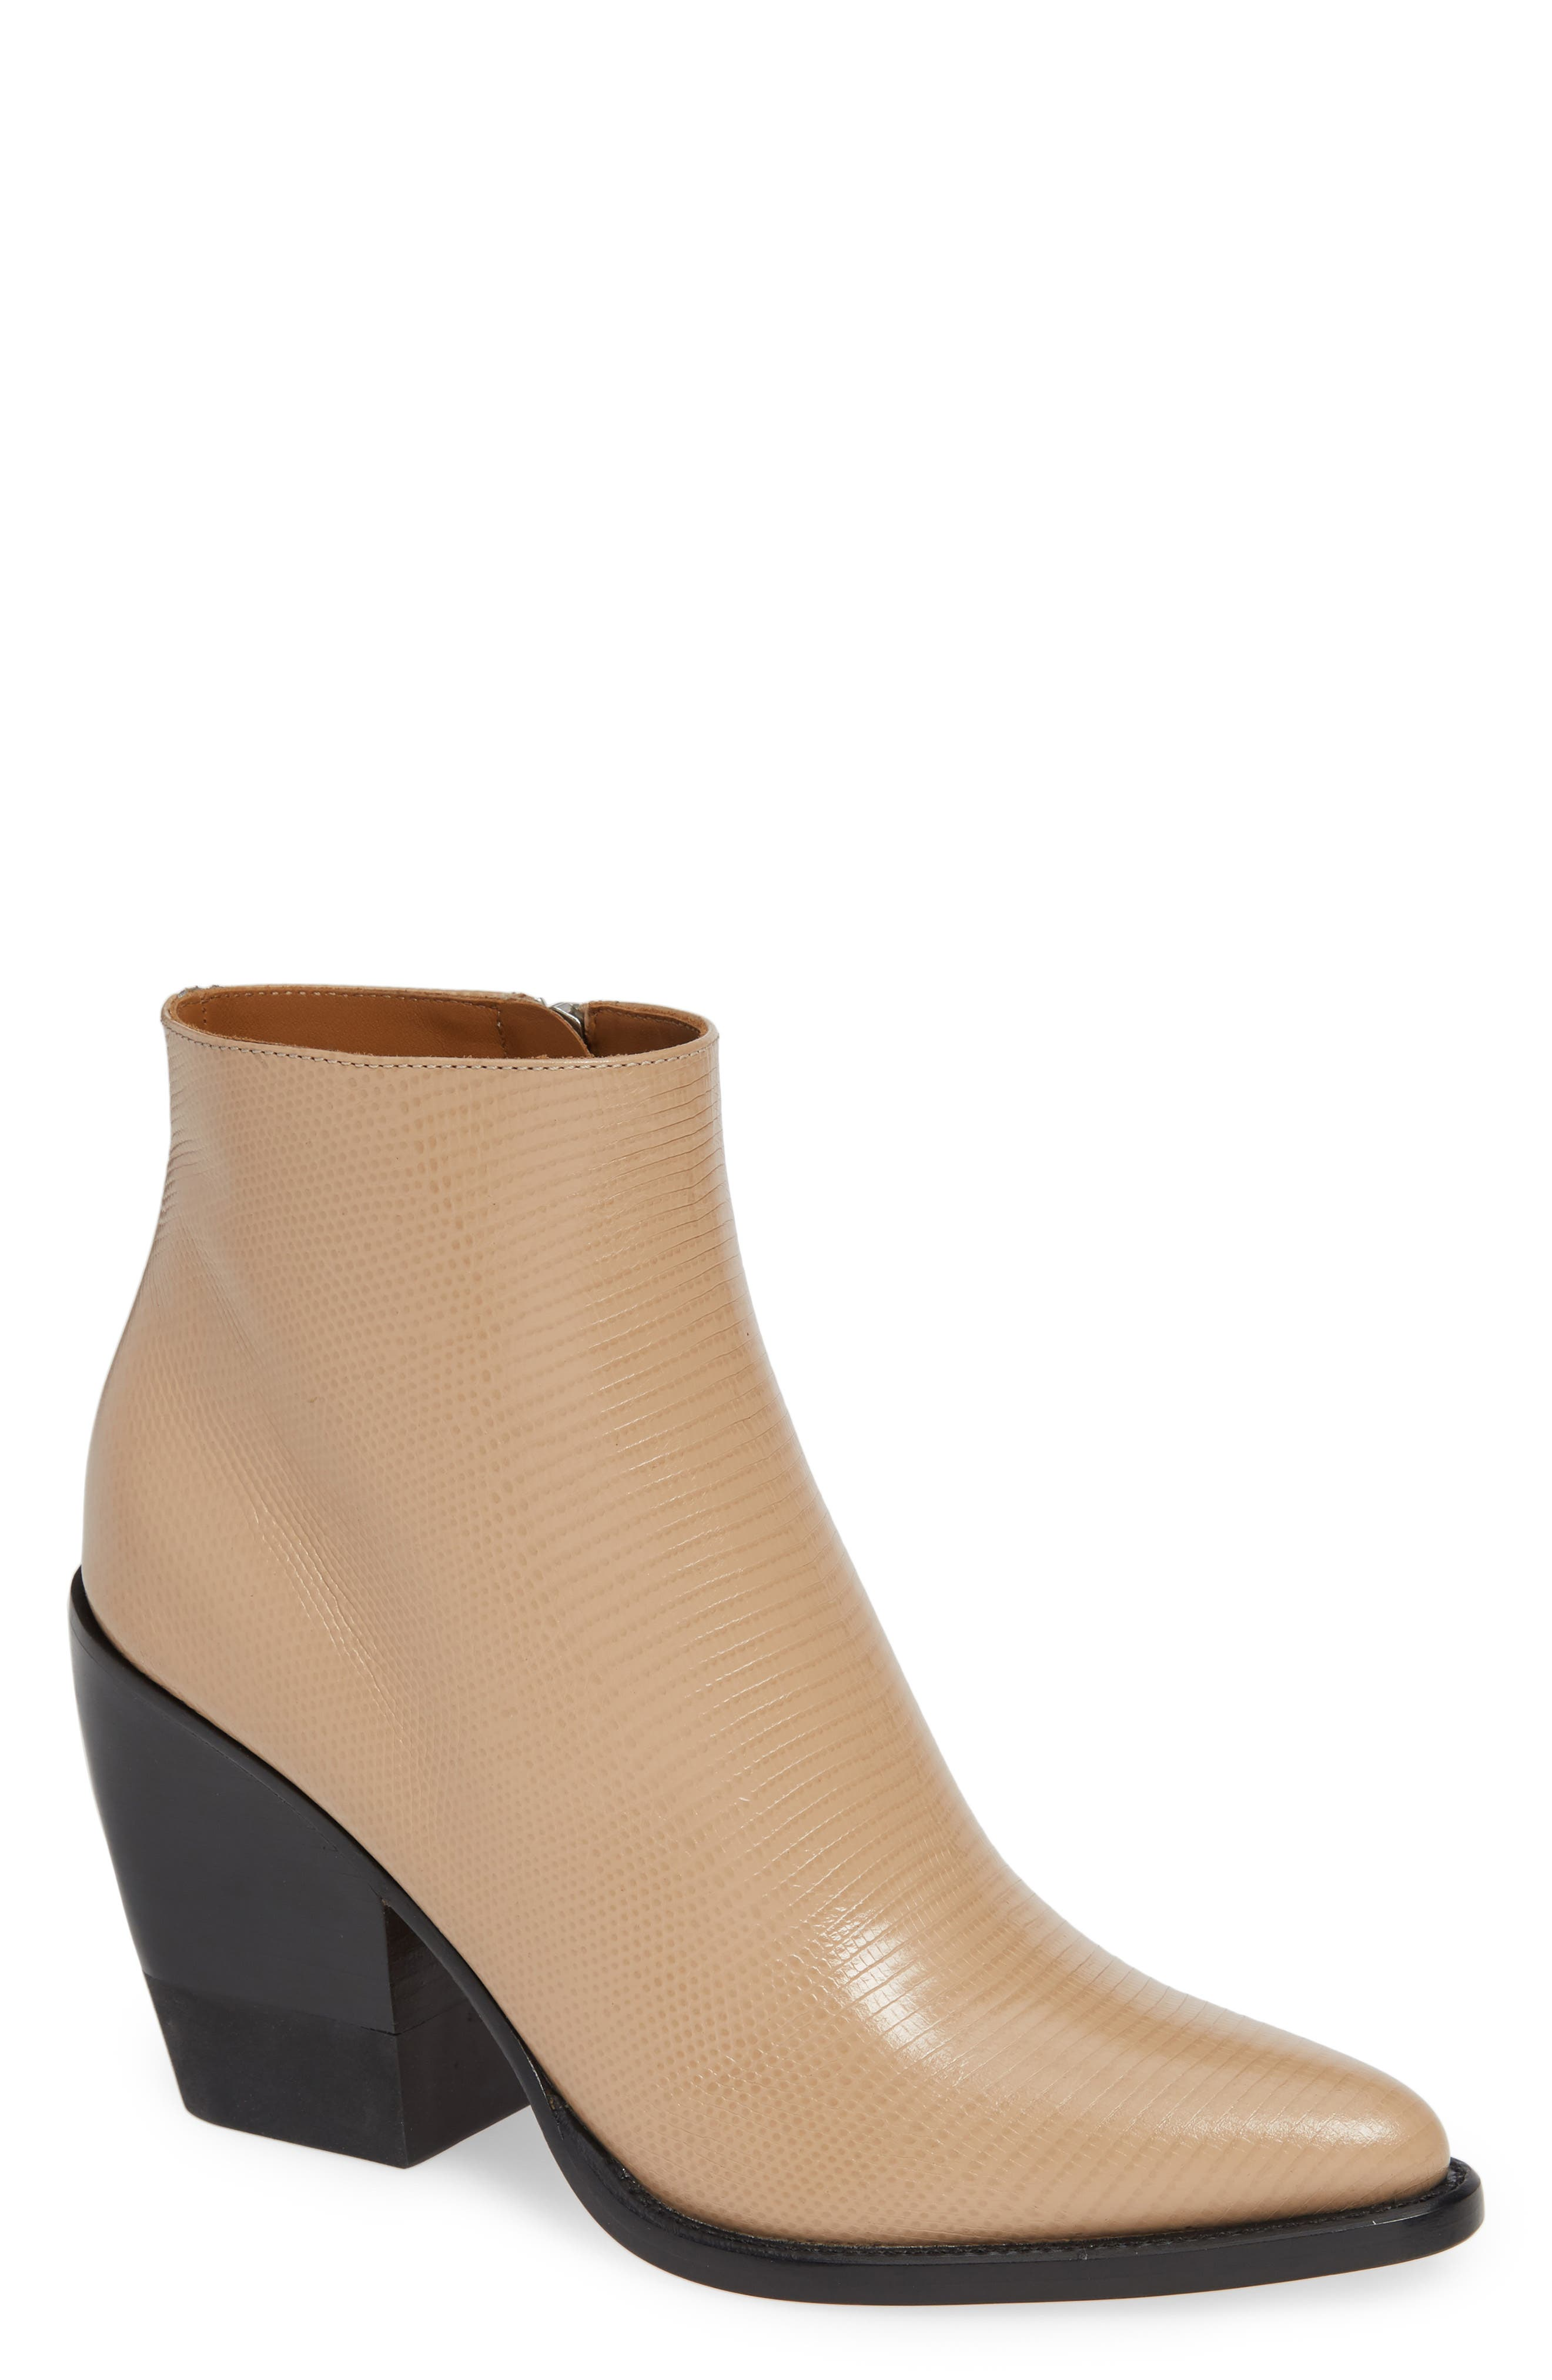 Chloe Rylee Ankle Bootie, Size - (Nordstrom Exclusive)